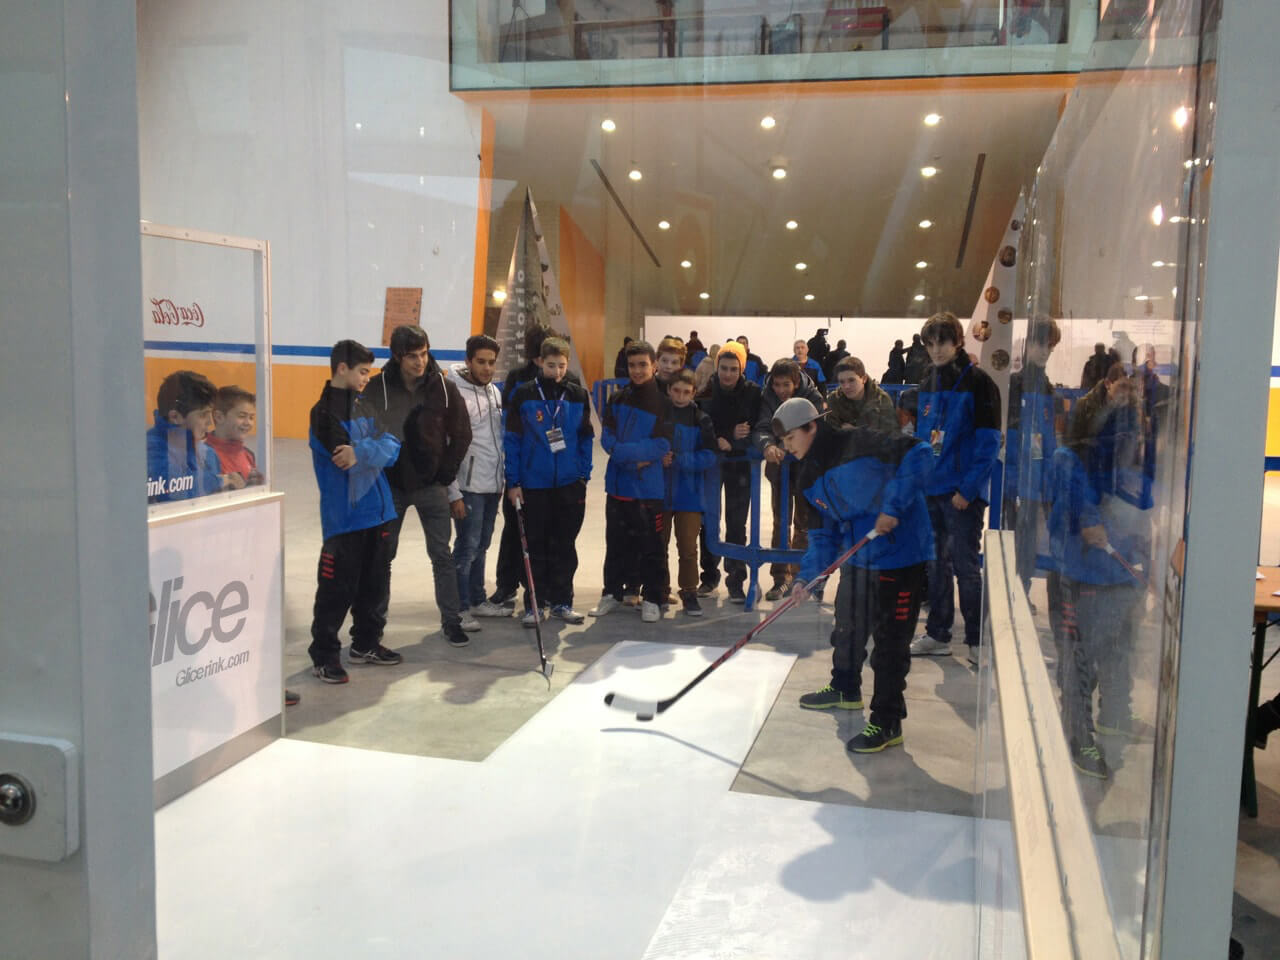 Synthetic ice slapshot station event